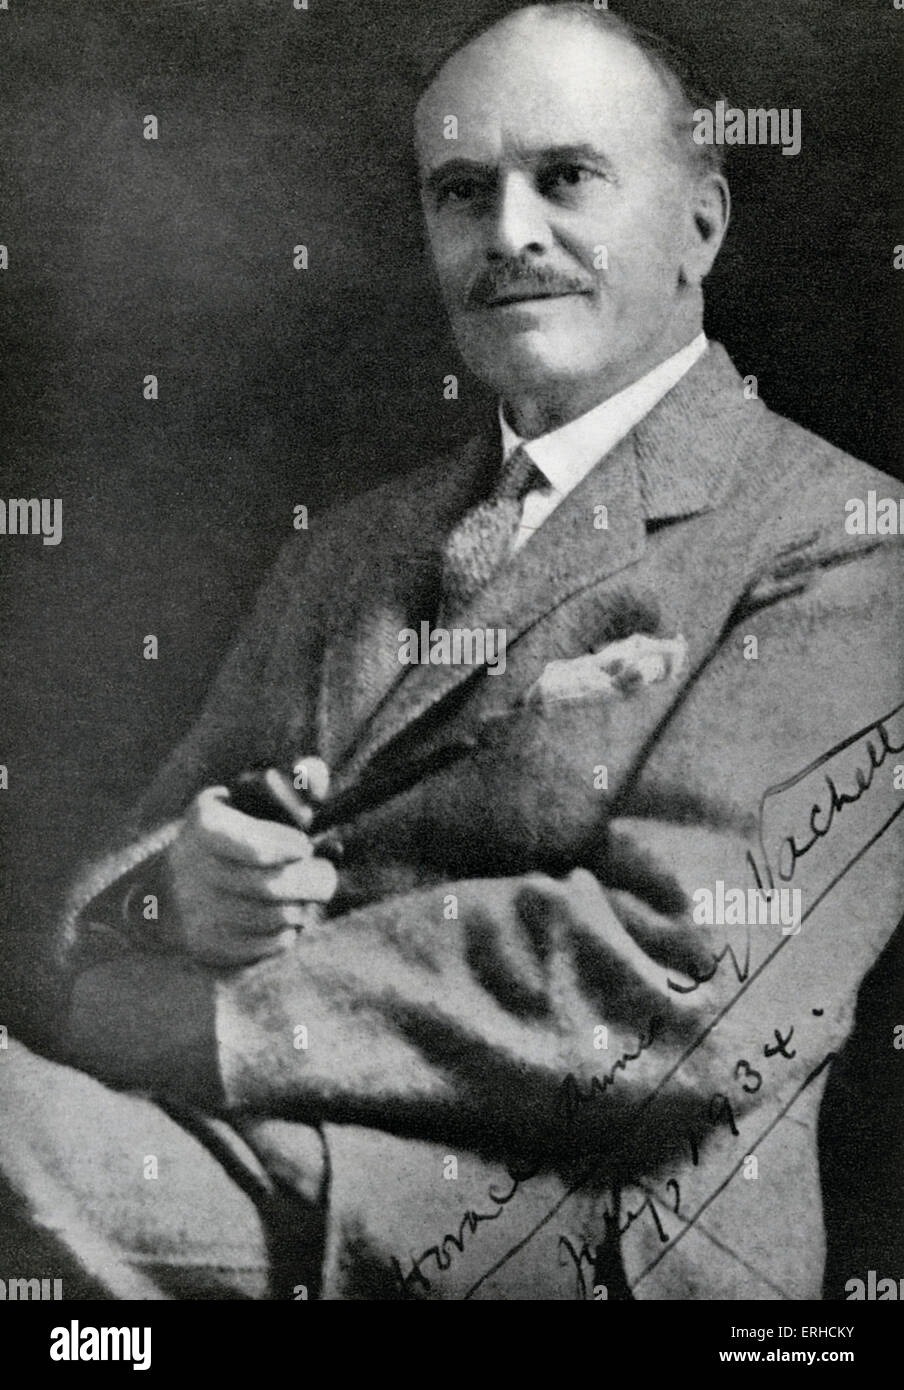 H A Vachell, Horace Annesley Vachell, English writer, 30 October 1861 - 10 January 1955. - Stock Image